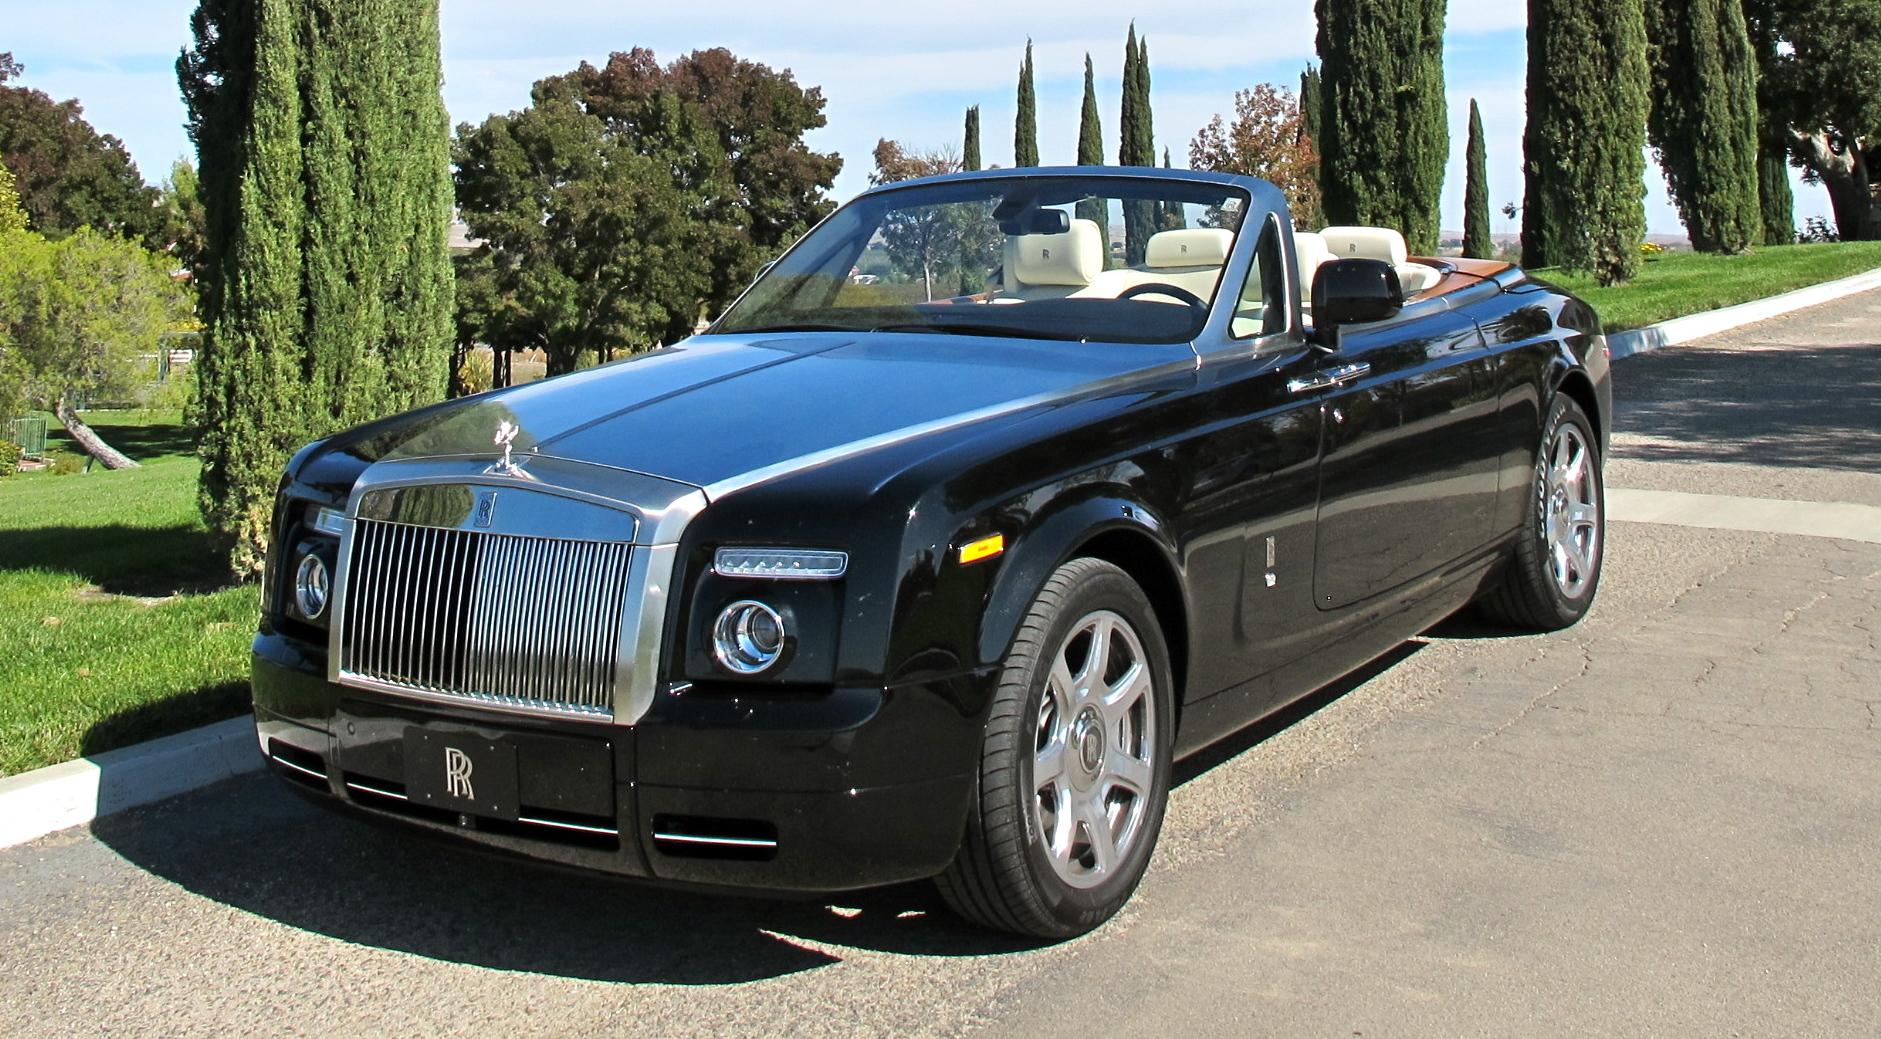 Rolls Royce Drophead Luxury Car Rental Miami Prime Luxury